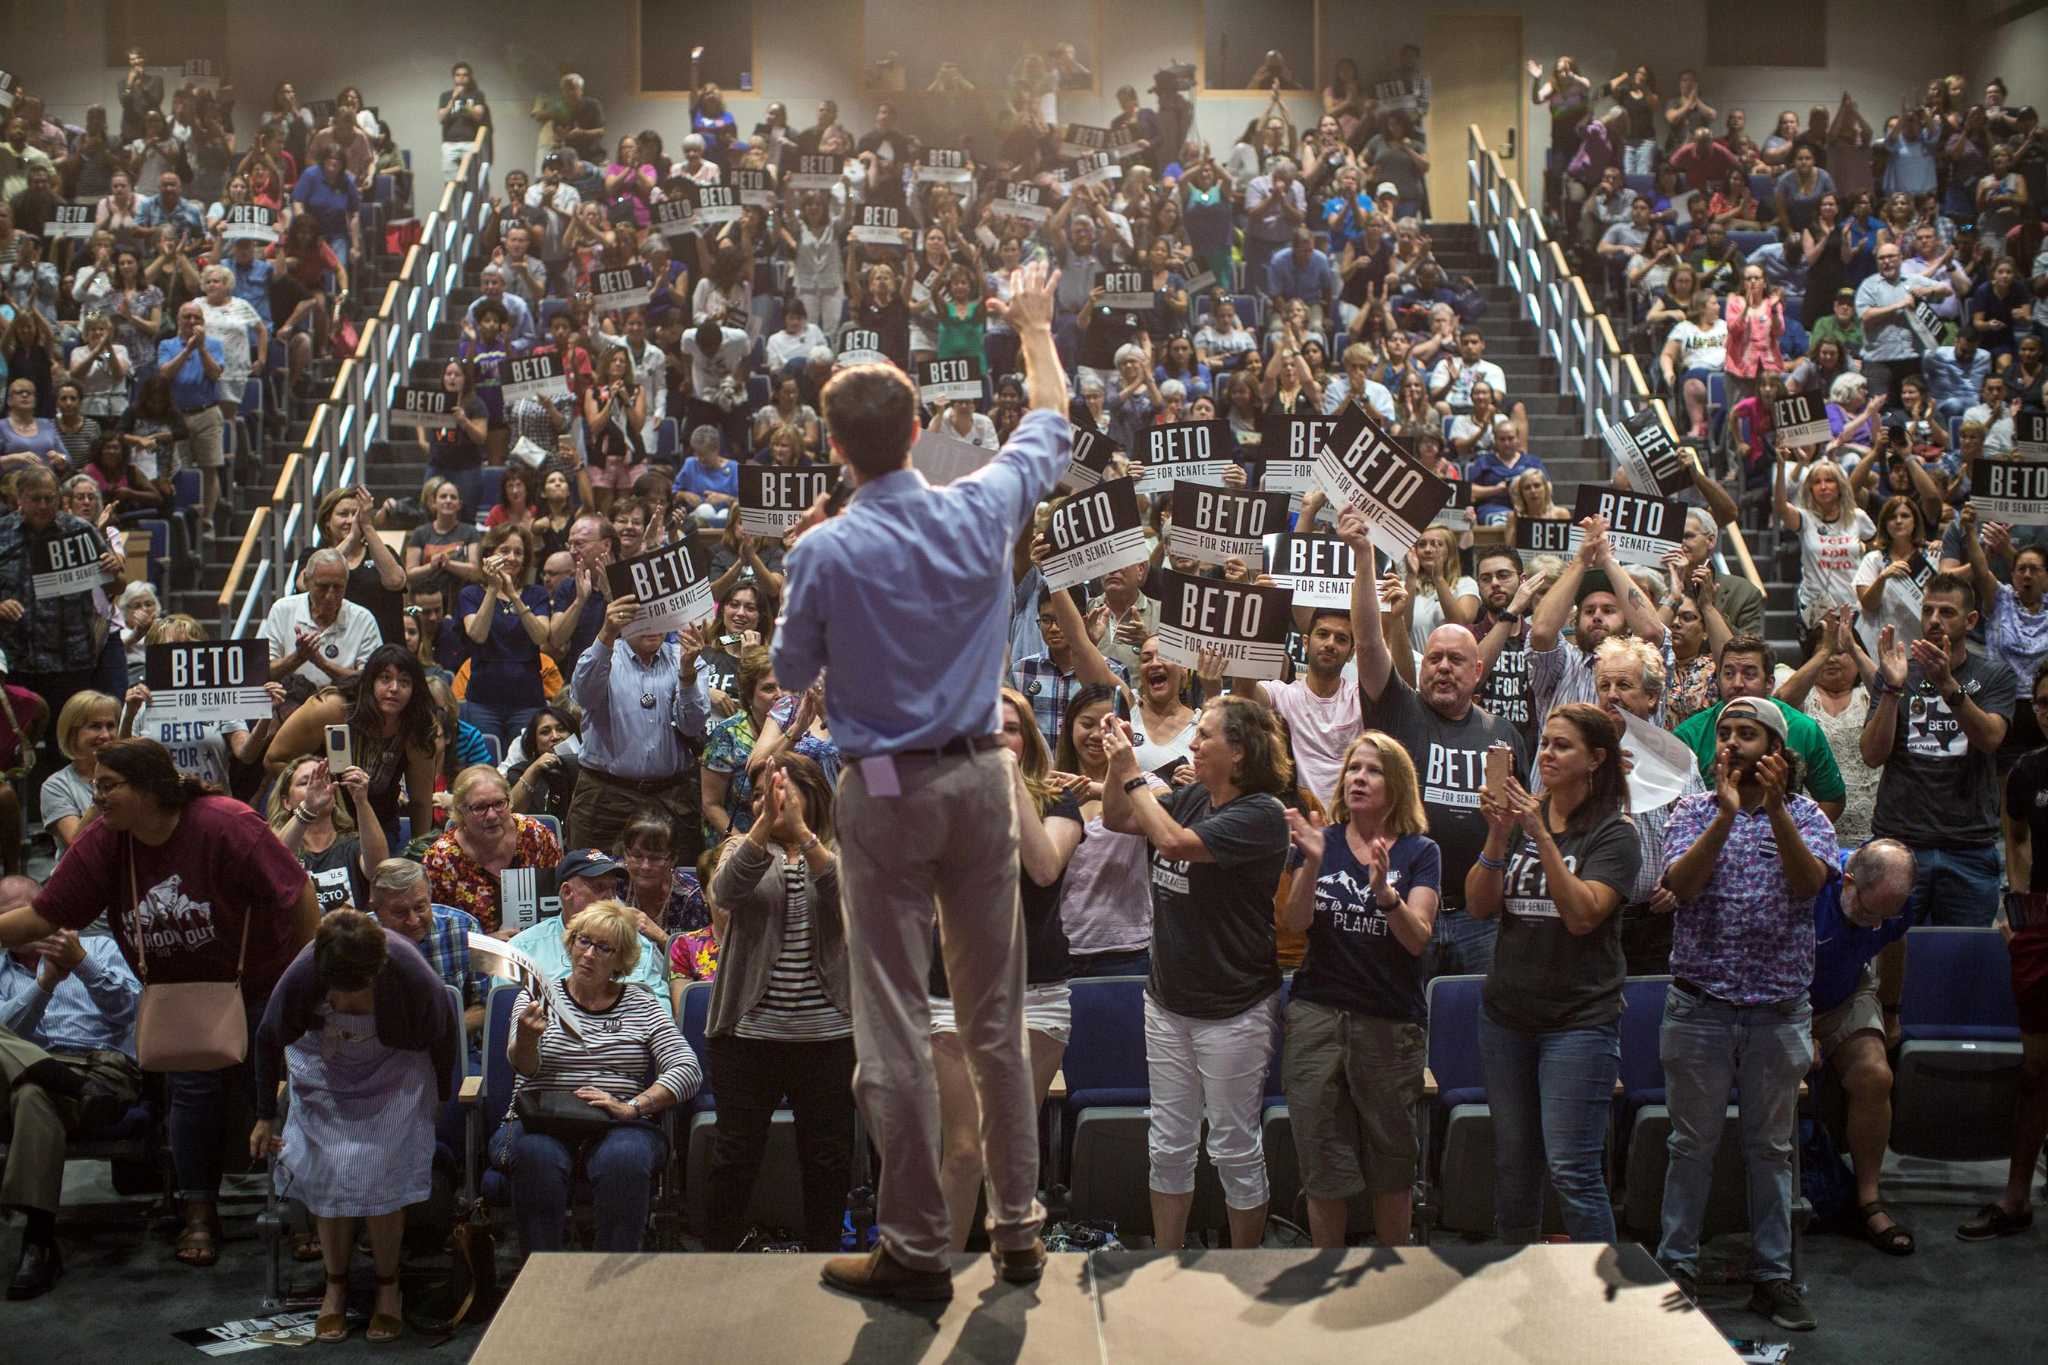 Grieder: Beto O'Rourke's return to state elections is a welcome development for Texas Democrats